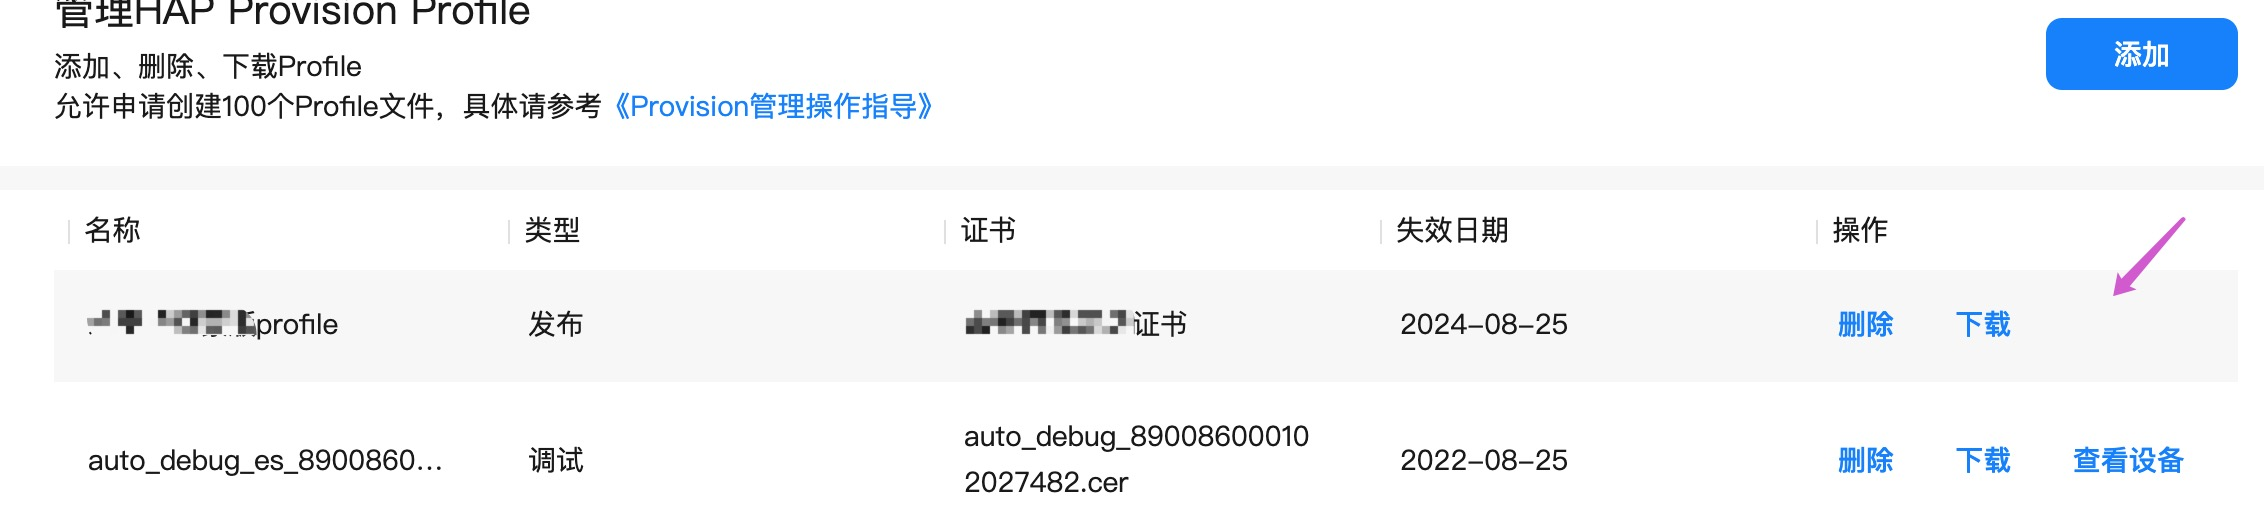 The profile does not contain the udid of the device. -鸿蒙HarmonyOS技术社区